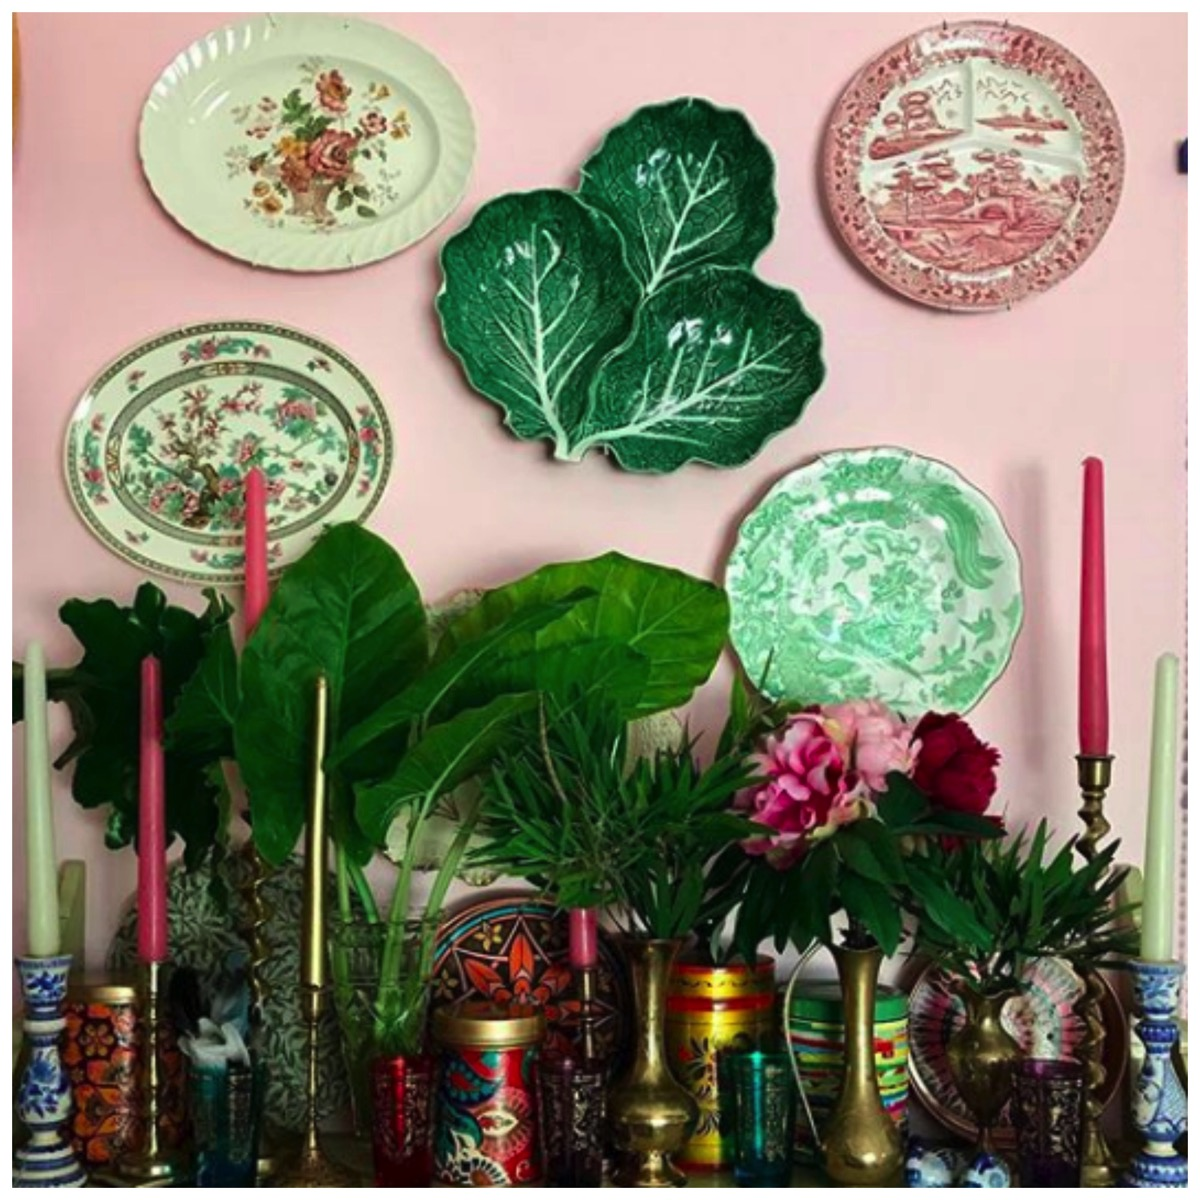 Pink boho home with plates and plants